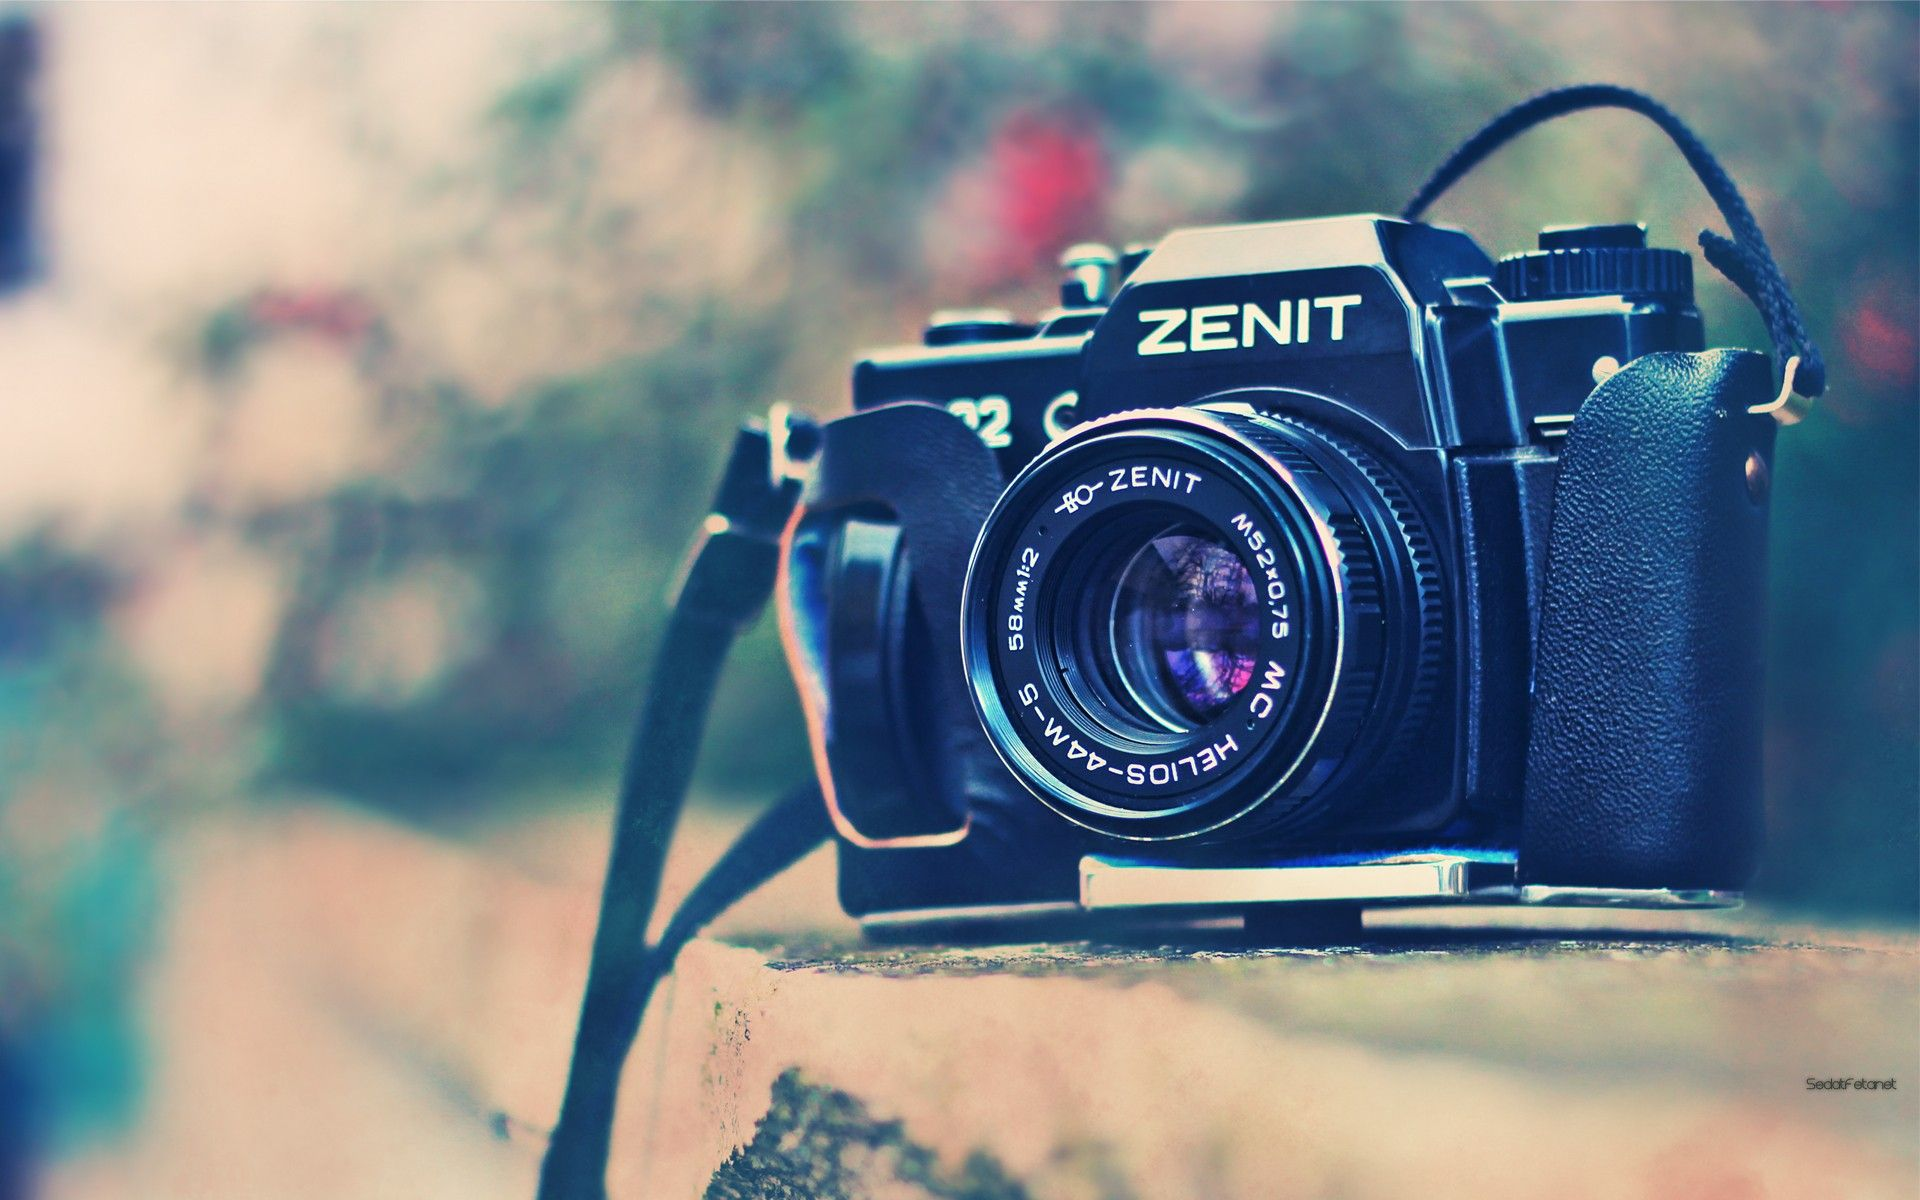 Camera Vintage Android : Lovely zenit camera photography camera vintage cameras